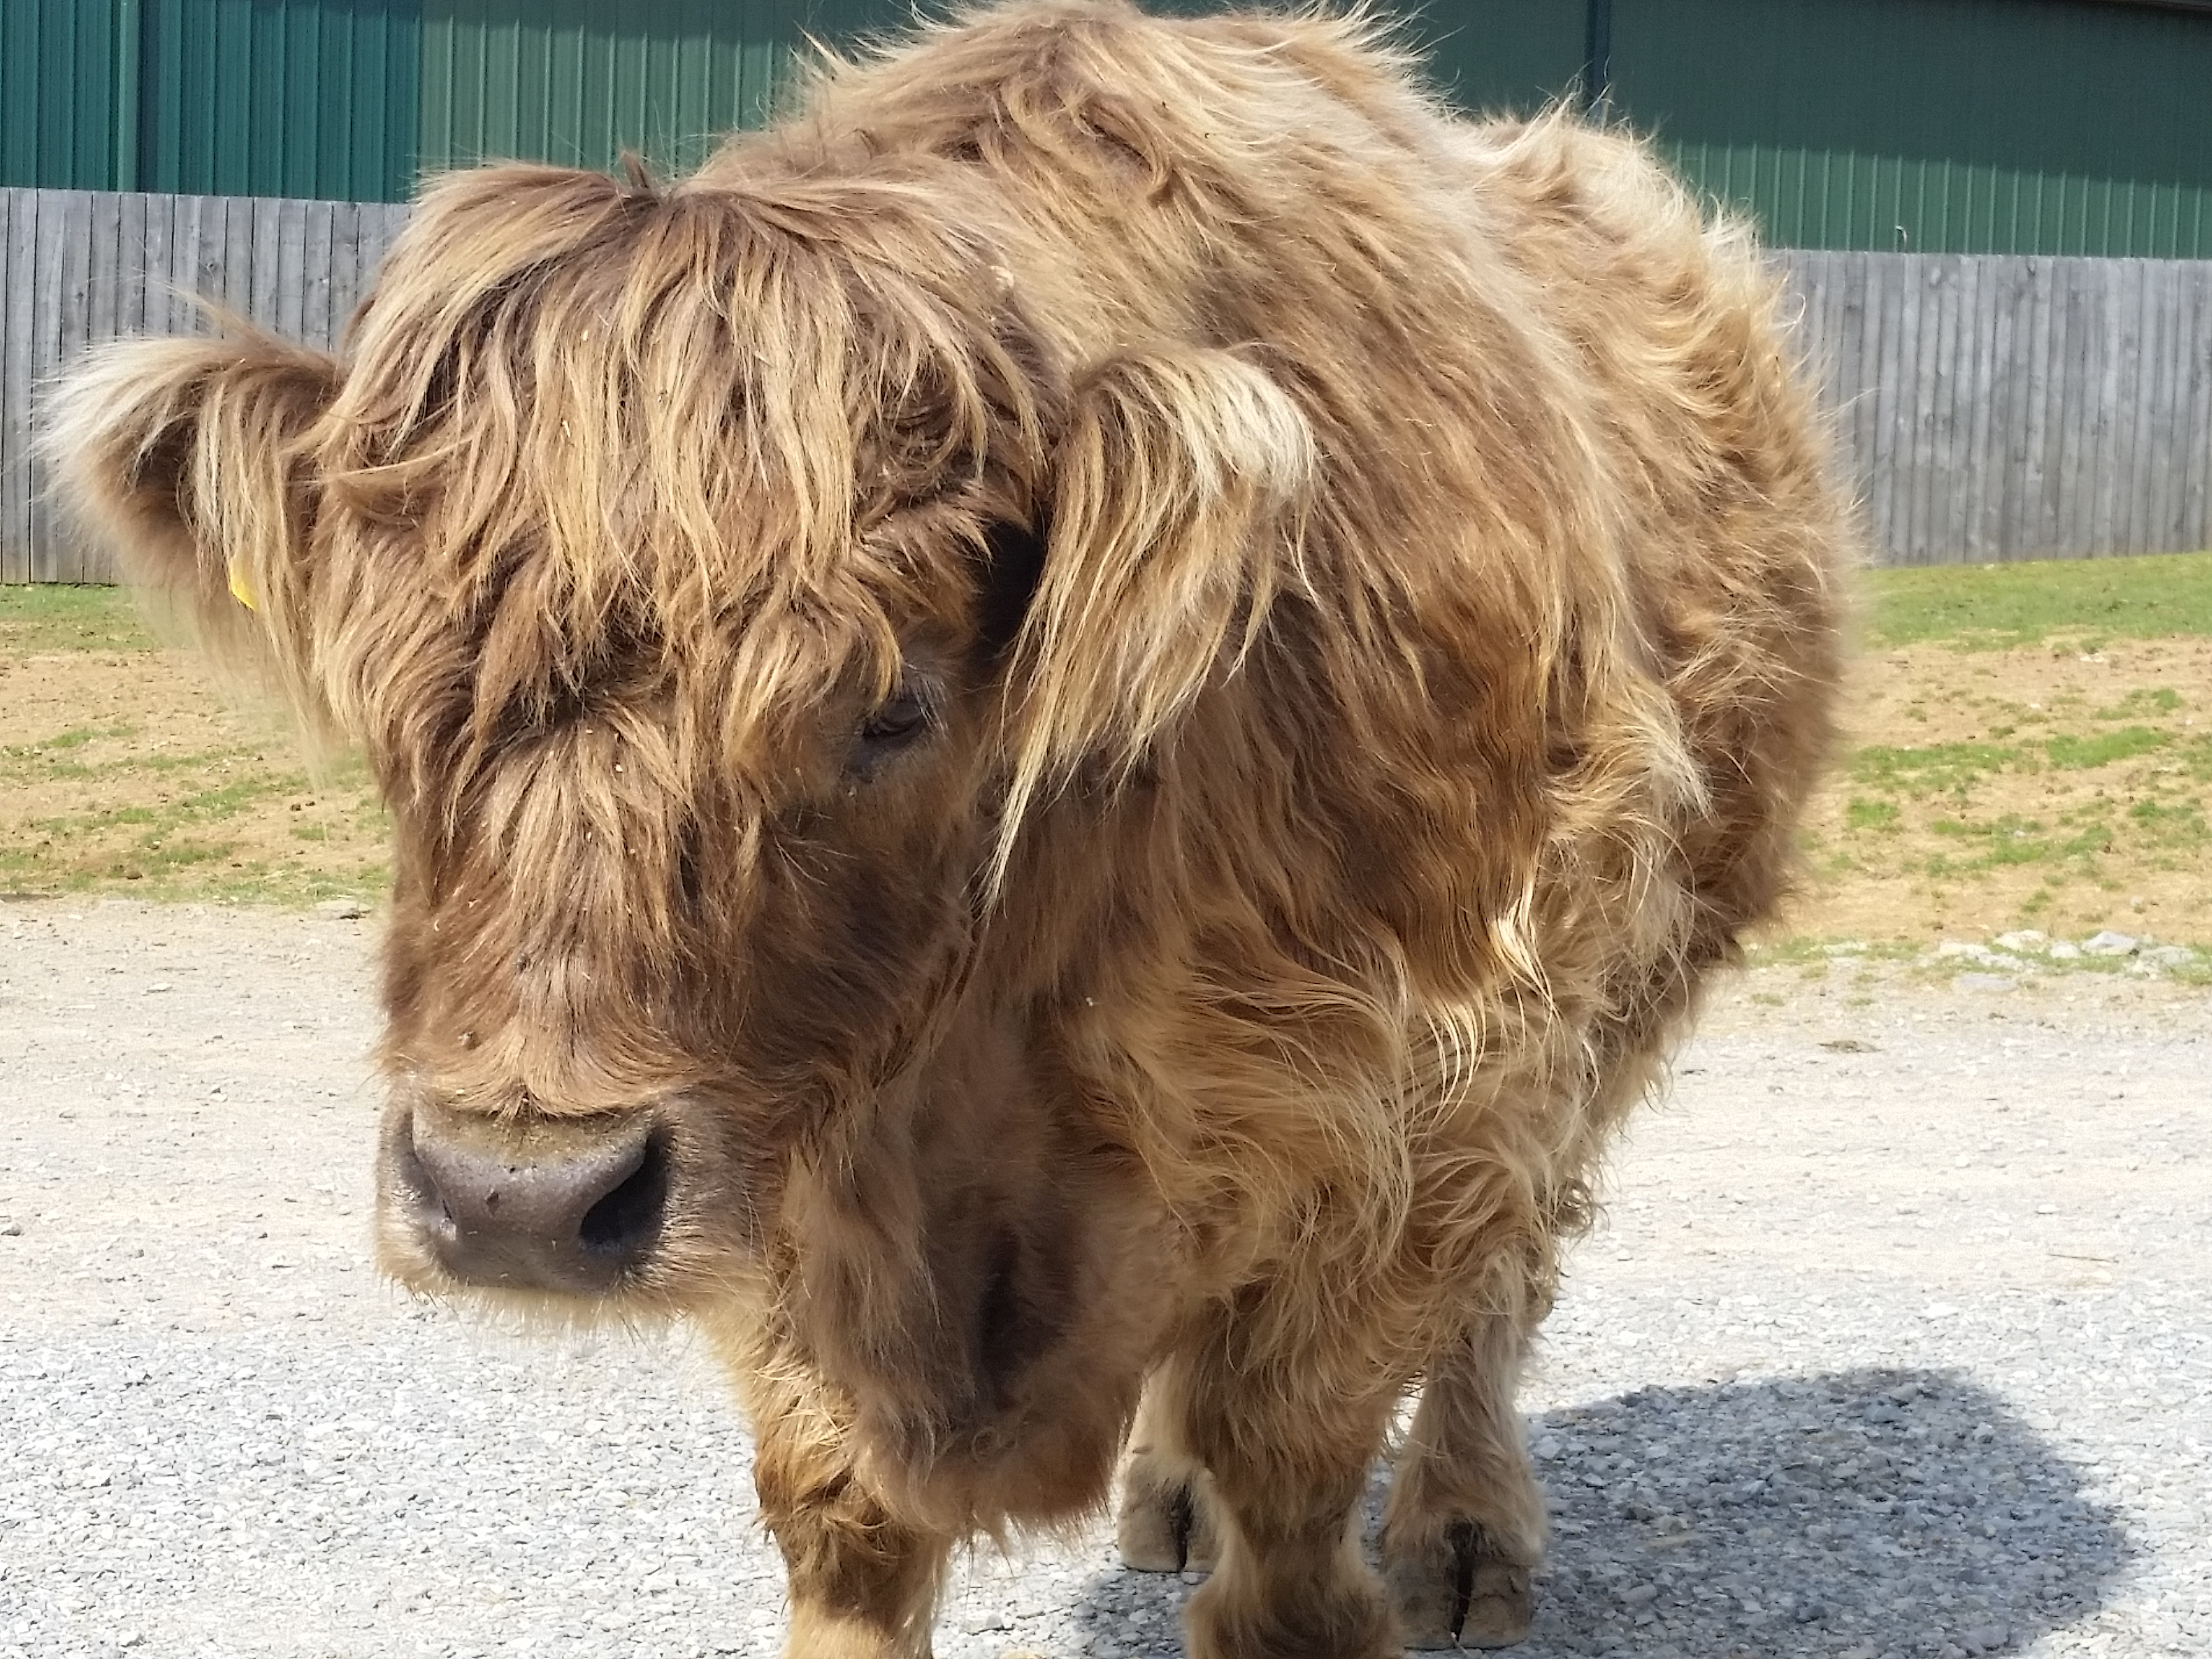 Scotch highland cattle at Virginia Safari Park